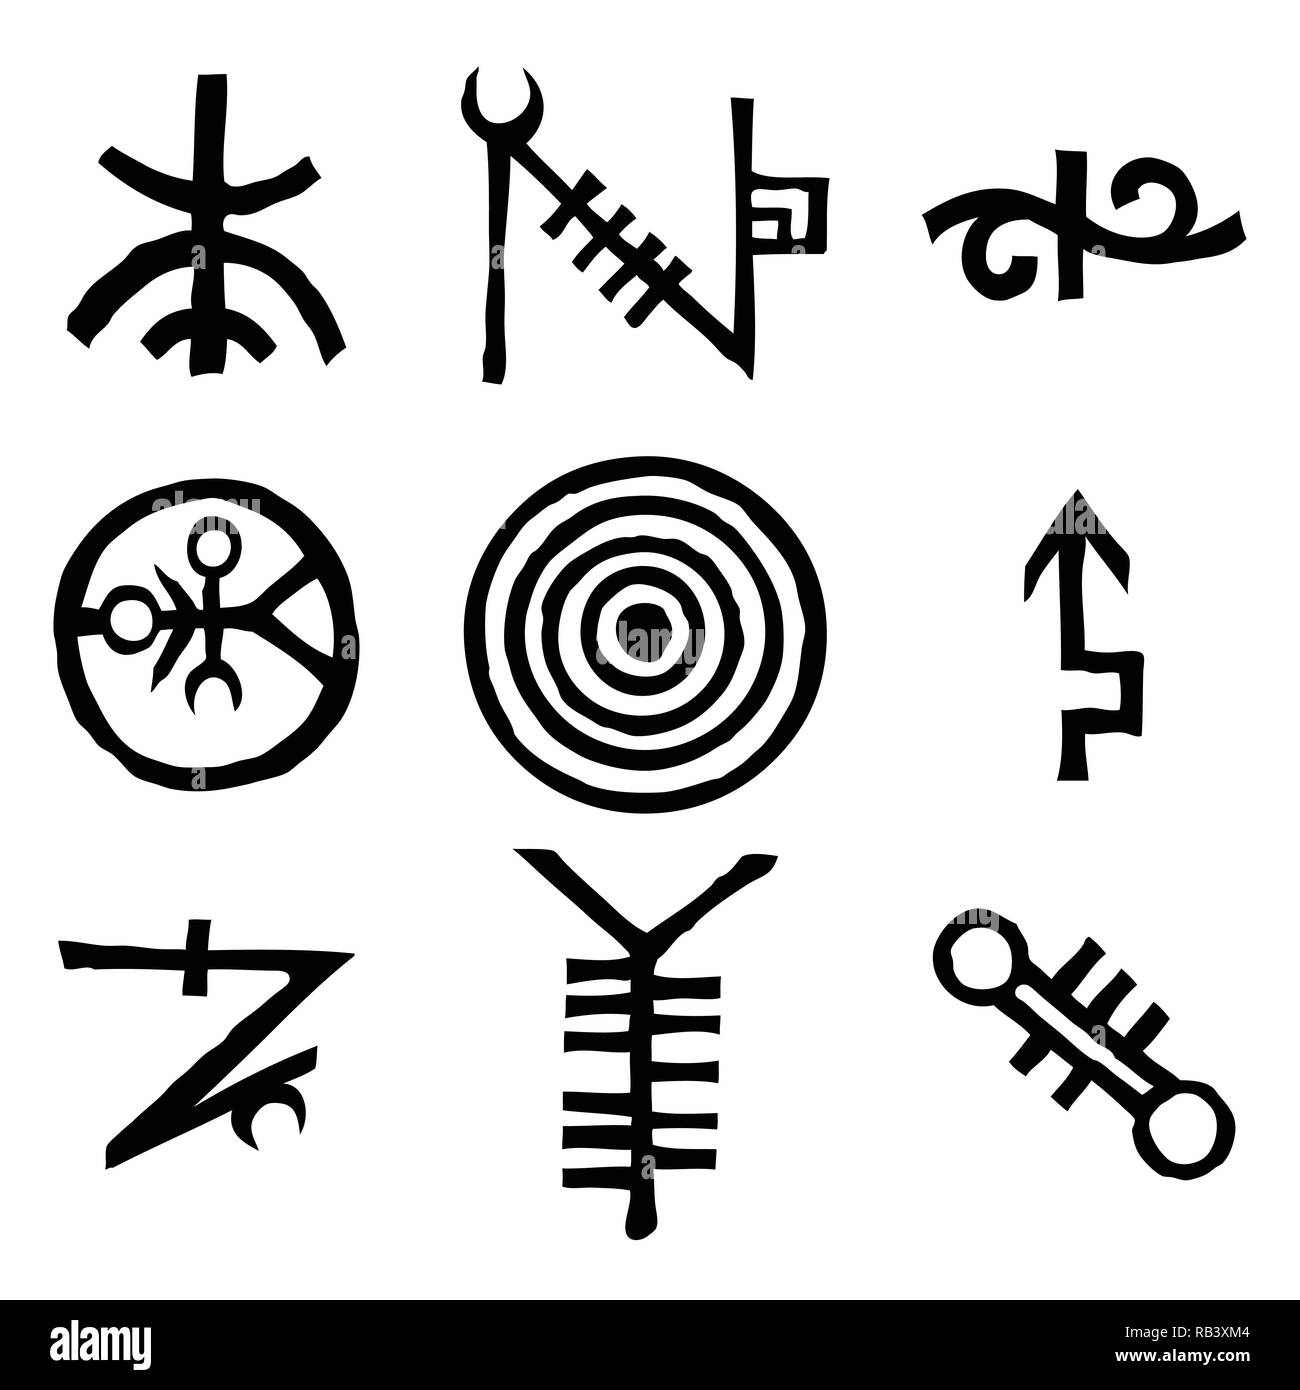 Set of icons and symbols letters inspired on the theme of